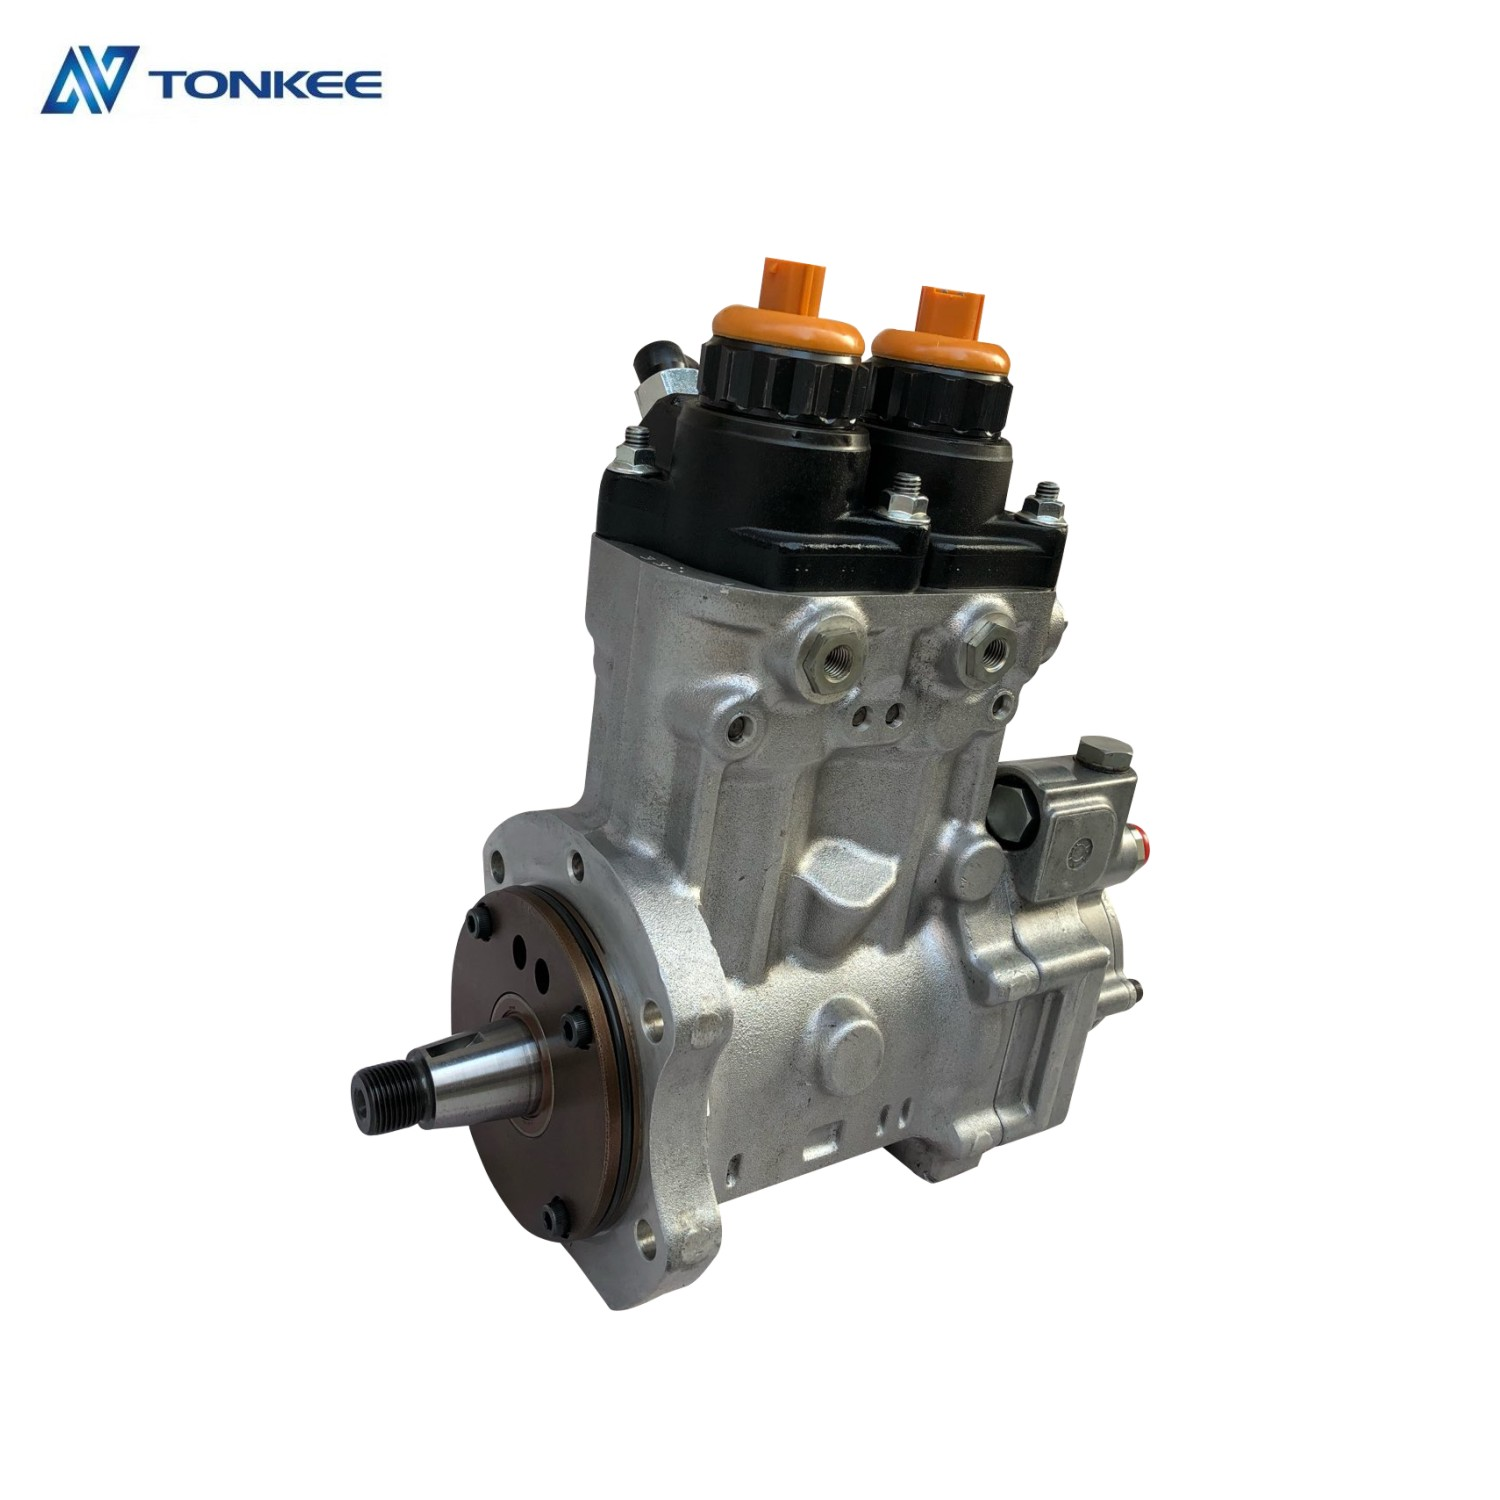 NEW 6219-71-1111 6219-71-1110 6219-71-1121 6219-71-1101 6219-71-1201 fuel supply pump PC2000-8  WA800-3 SAA12V140E-3E SAA12V140 fuel injection pump for KOMATSU excavation